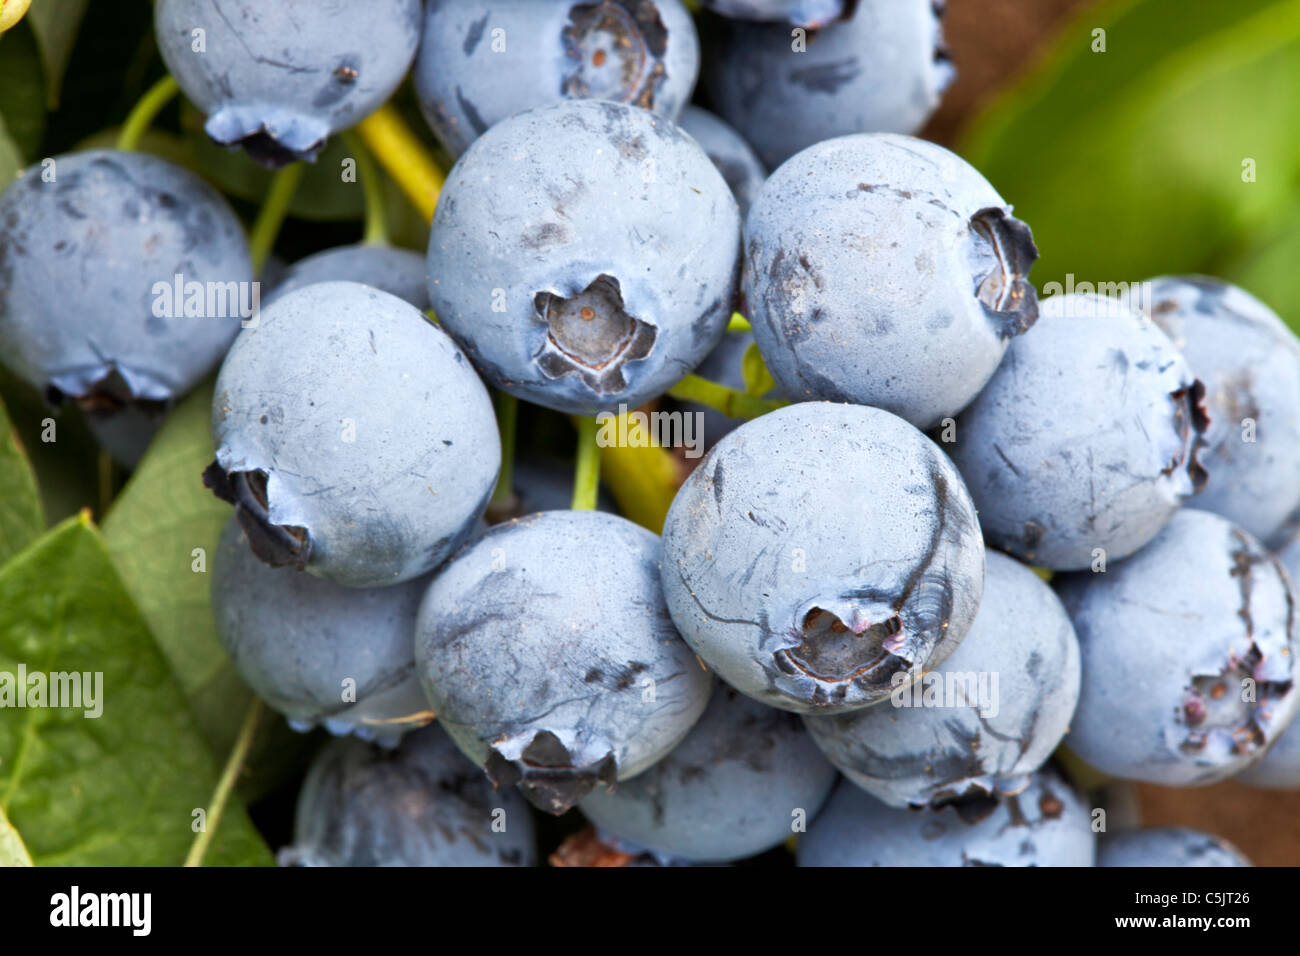 Blueberries 'Bluejay', branch. - Stock Image